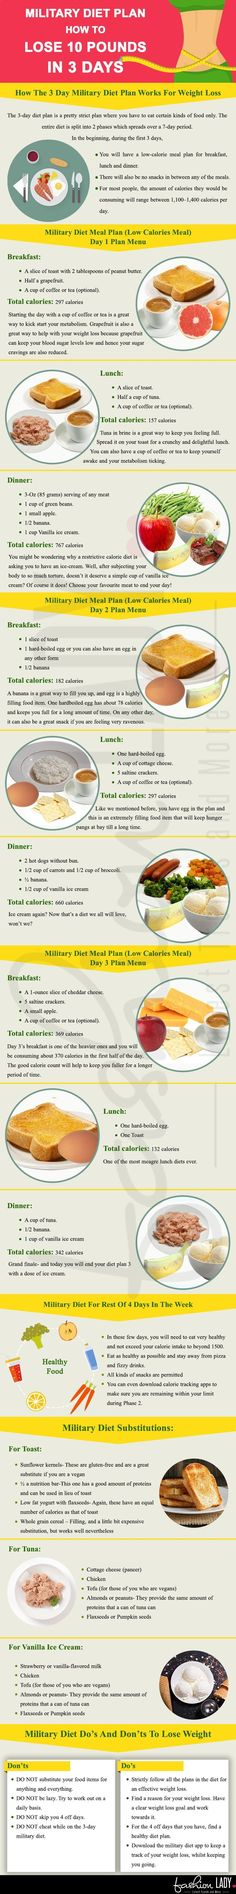 3 Week Diet Loss Weight - Military Diet Plan – Here's How You Can Lose 10 Pounds In 3 Days THE 3 WEEK DIET is a revolutionary new diet system that not only guarantees to help you lose weight — it promises to help you lose more weight — all body fat — faster than anything else you've ever tried.